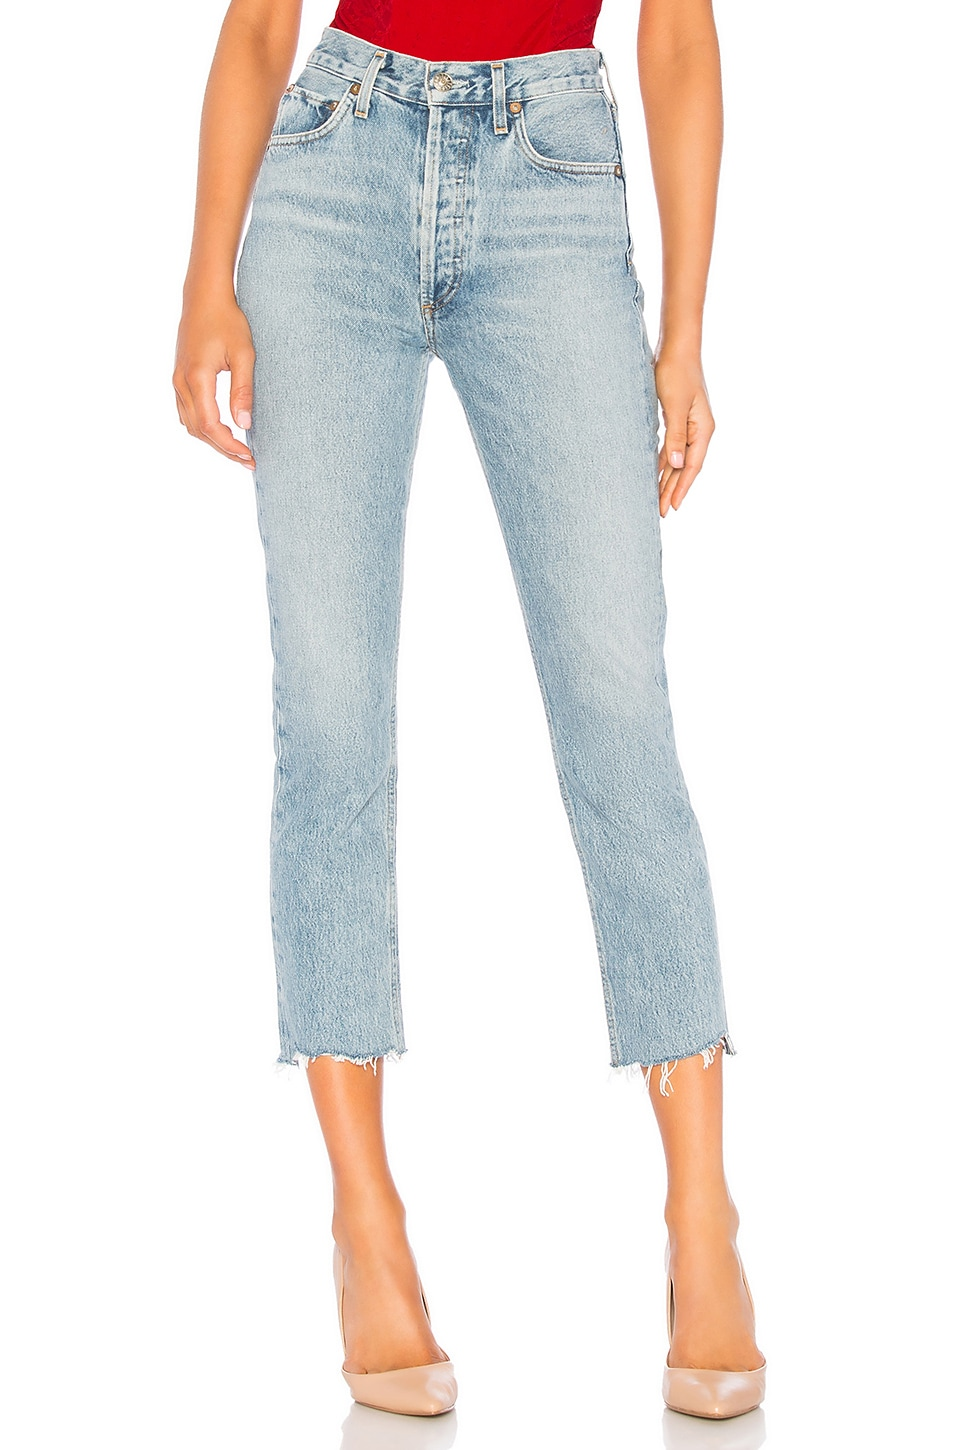 Riley High Rise Straight Crop                   AGOLDE                                                                                                                             CA$ 258.93 3